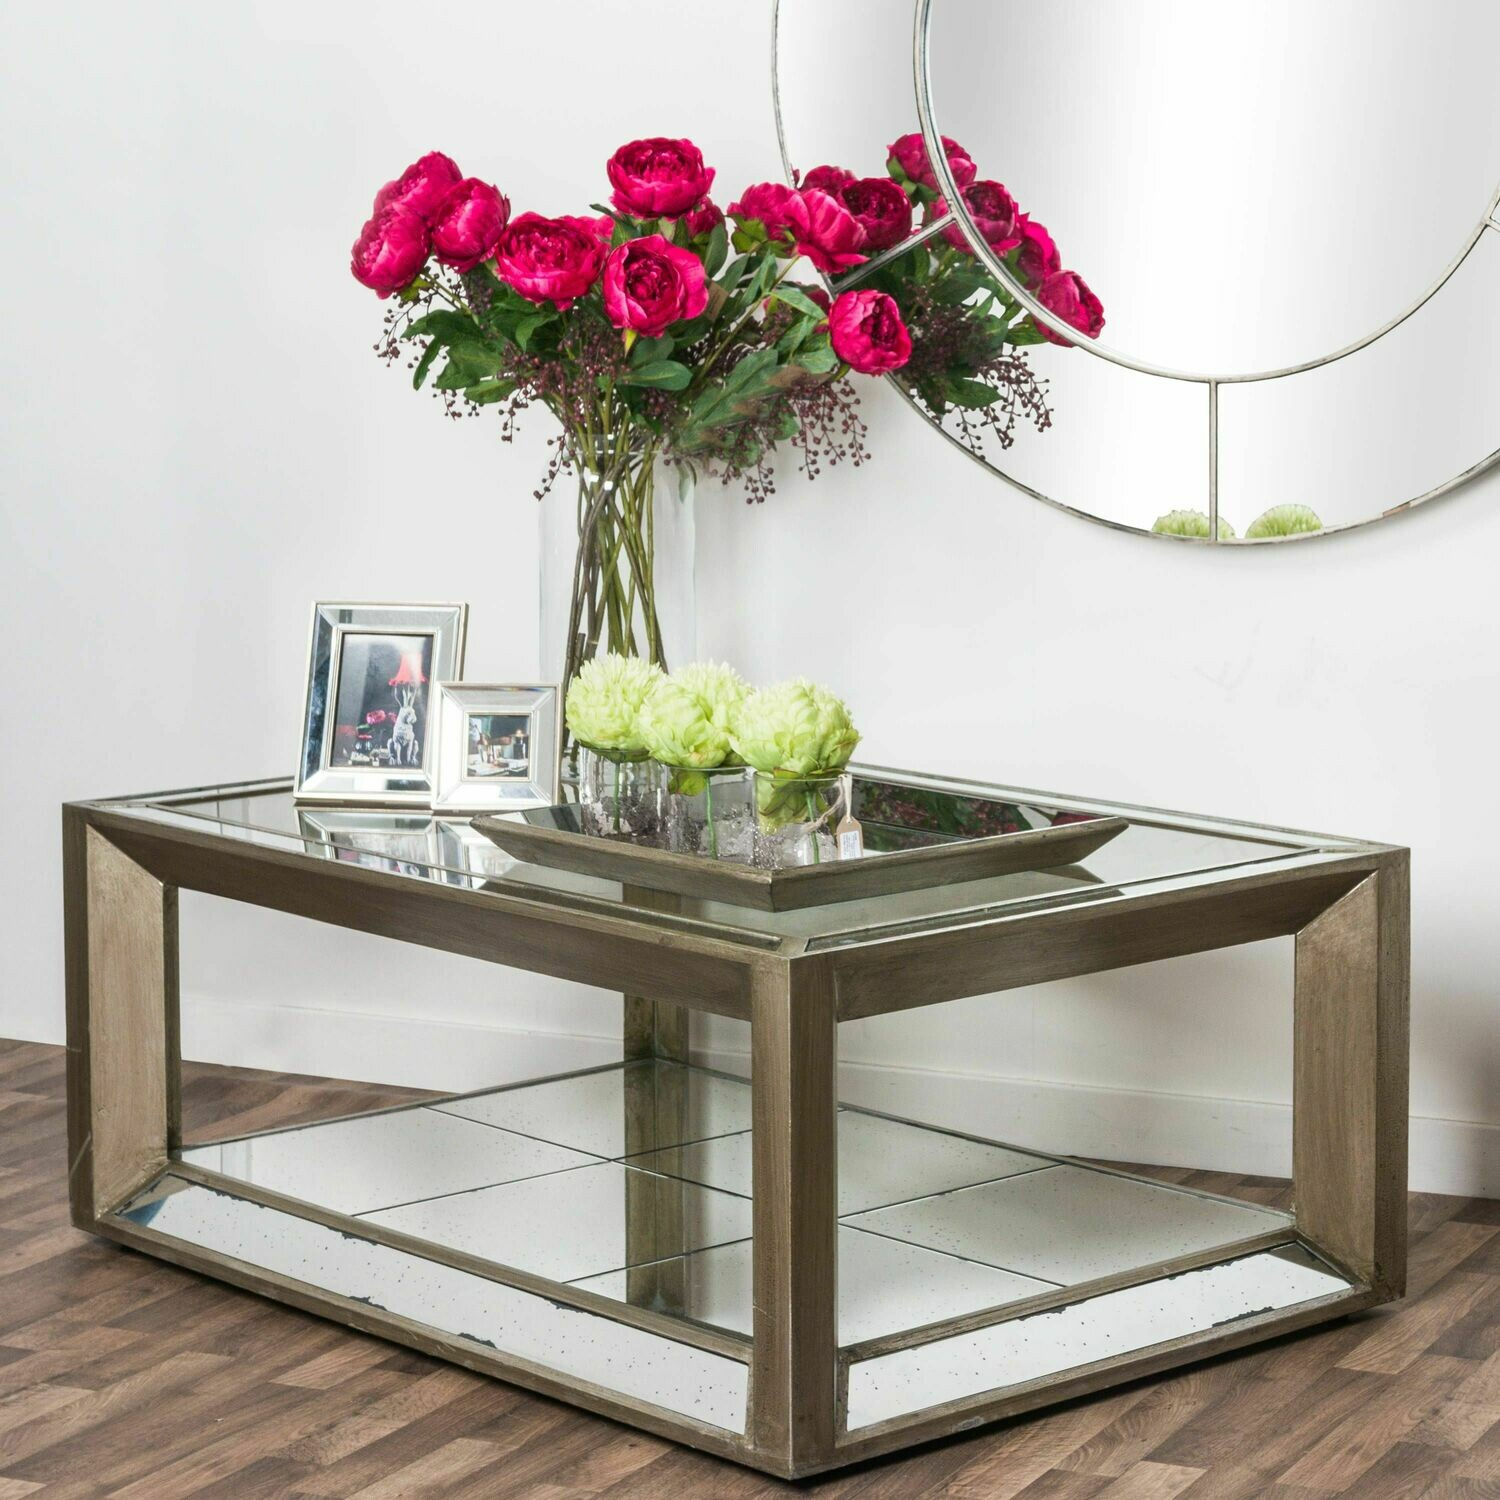 Distressed Large Mirrored Tray with wooden base